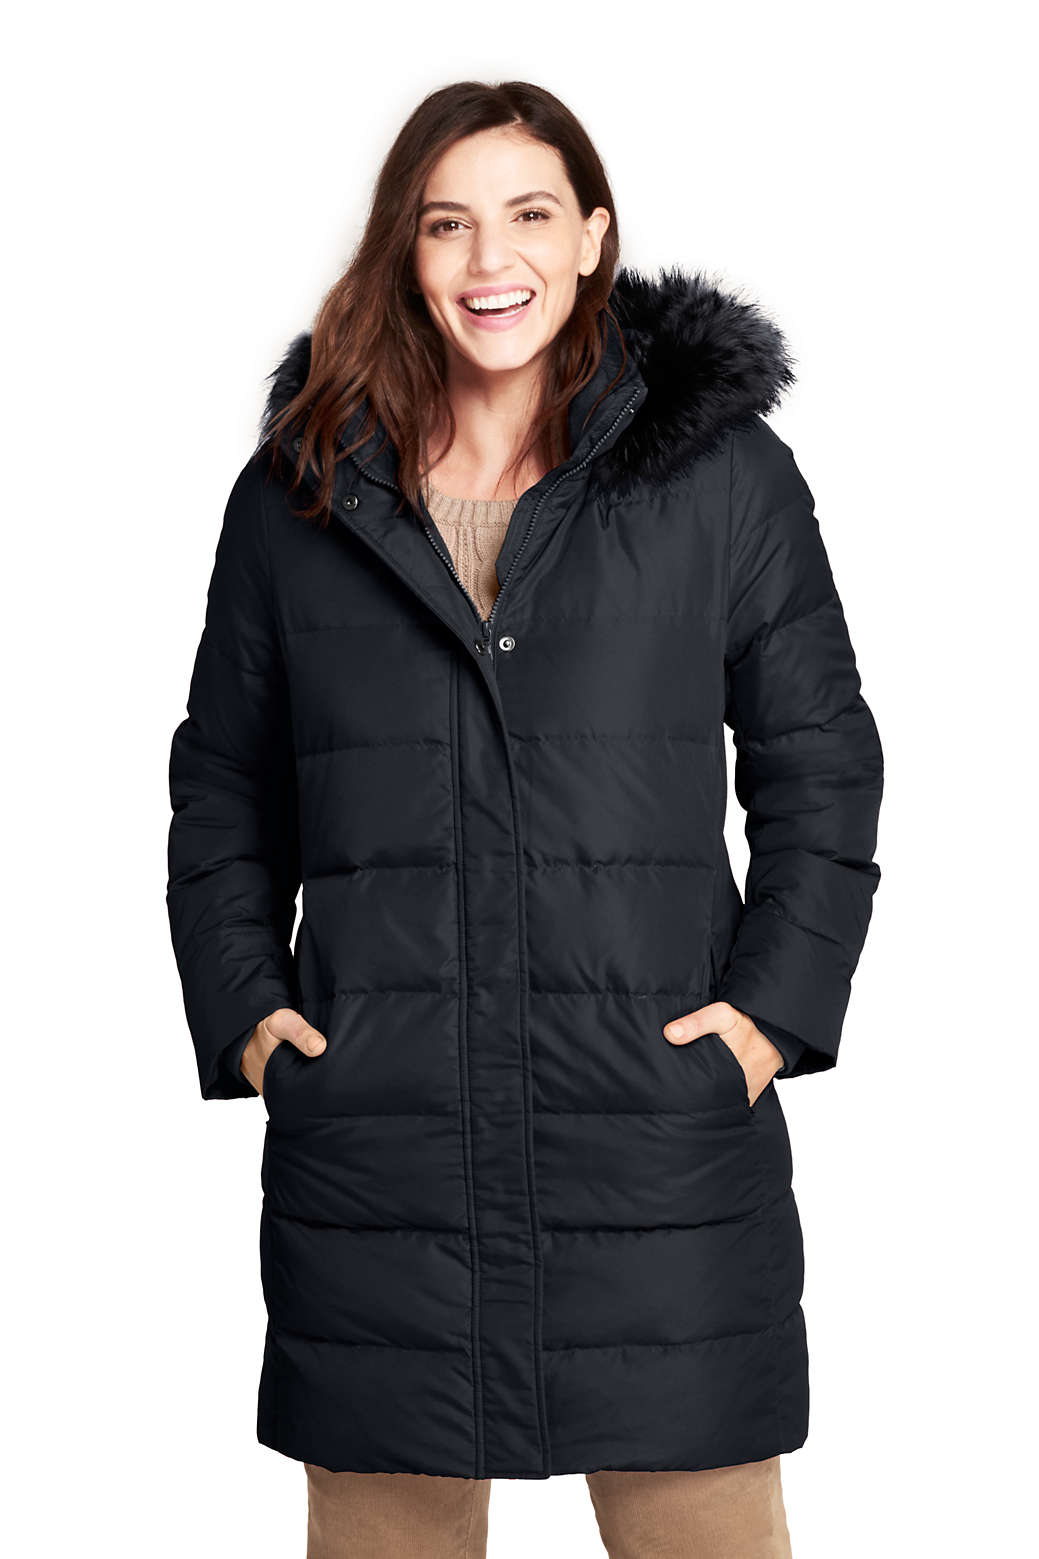 bb9614947fe Women s Plus Size Winter Long Down Coat with Faux Fur Hood from Lands  End